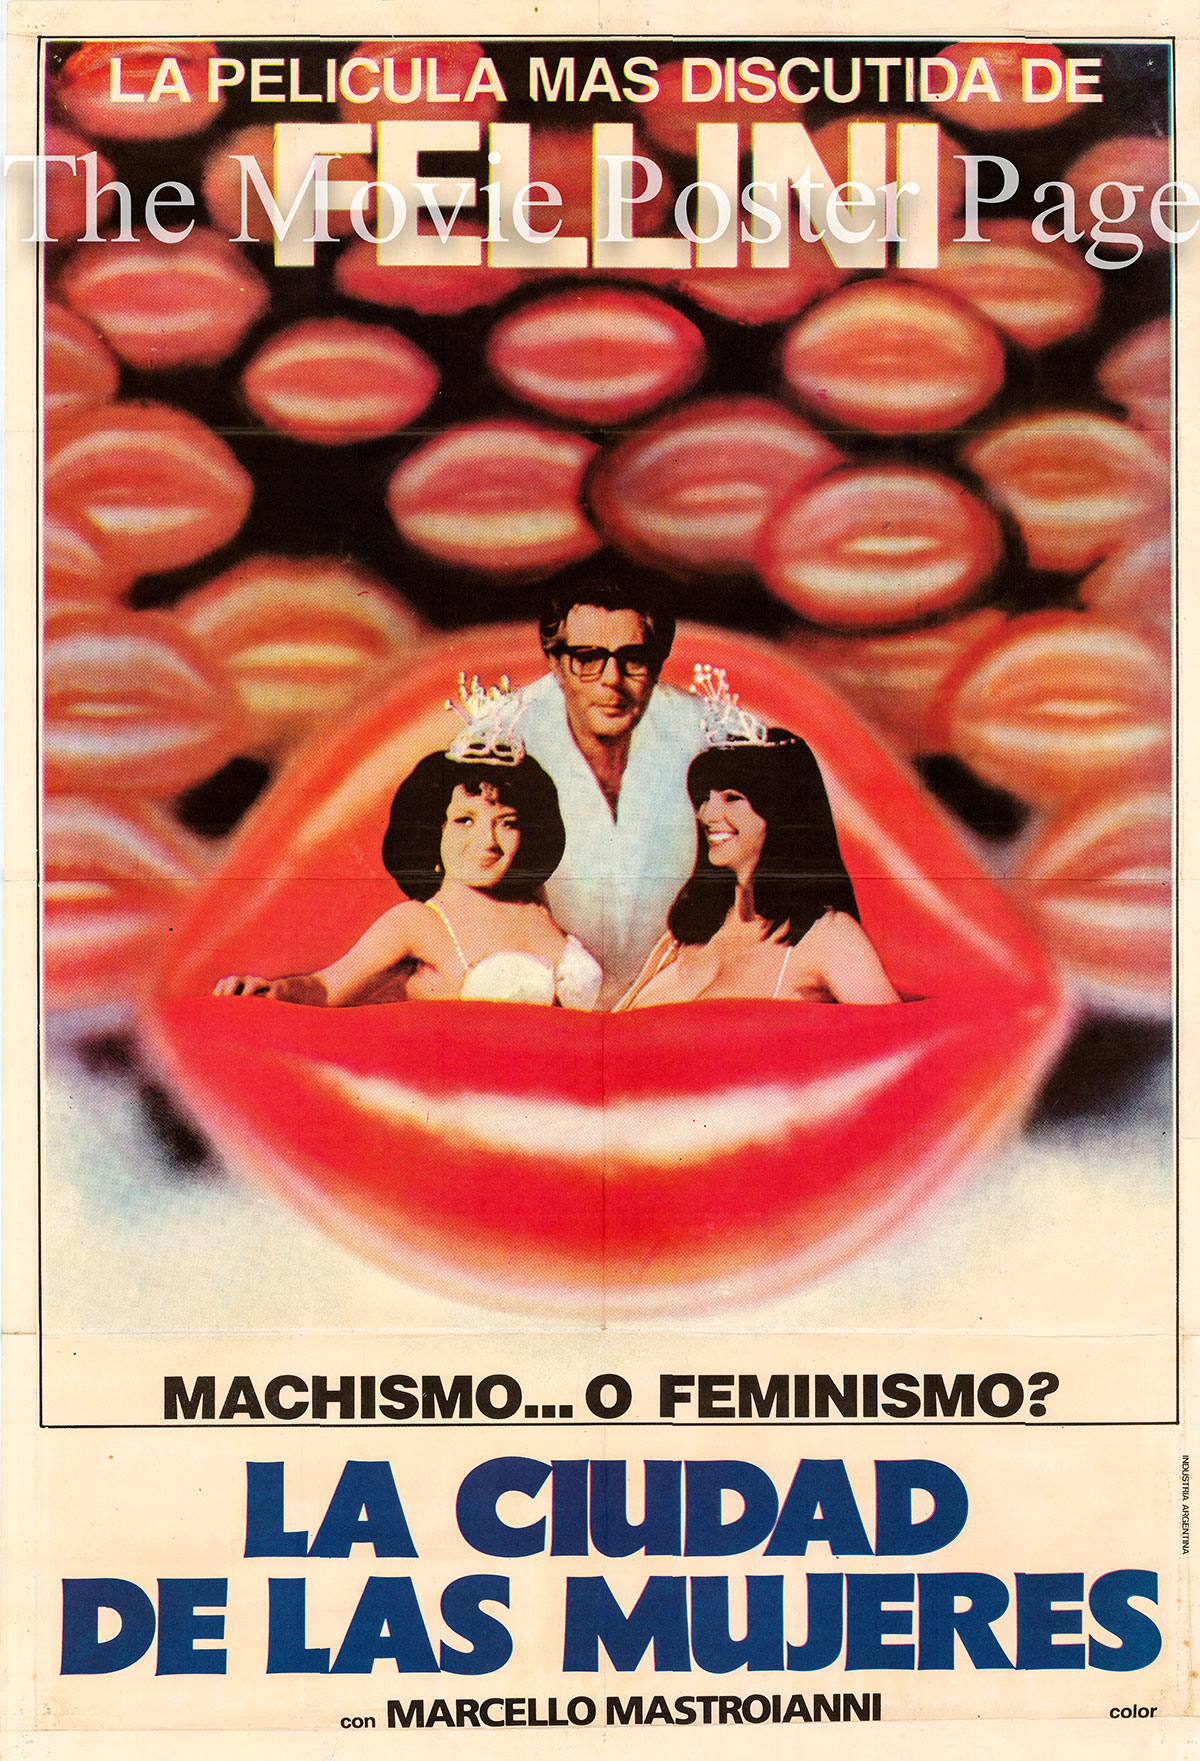 Pictured is an Argentine promotional poster for the 1980 Federico Fellini film City of Women starring Marcello Mastroianni.